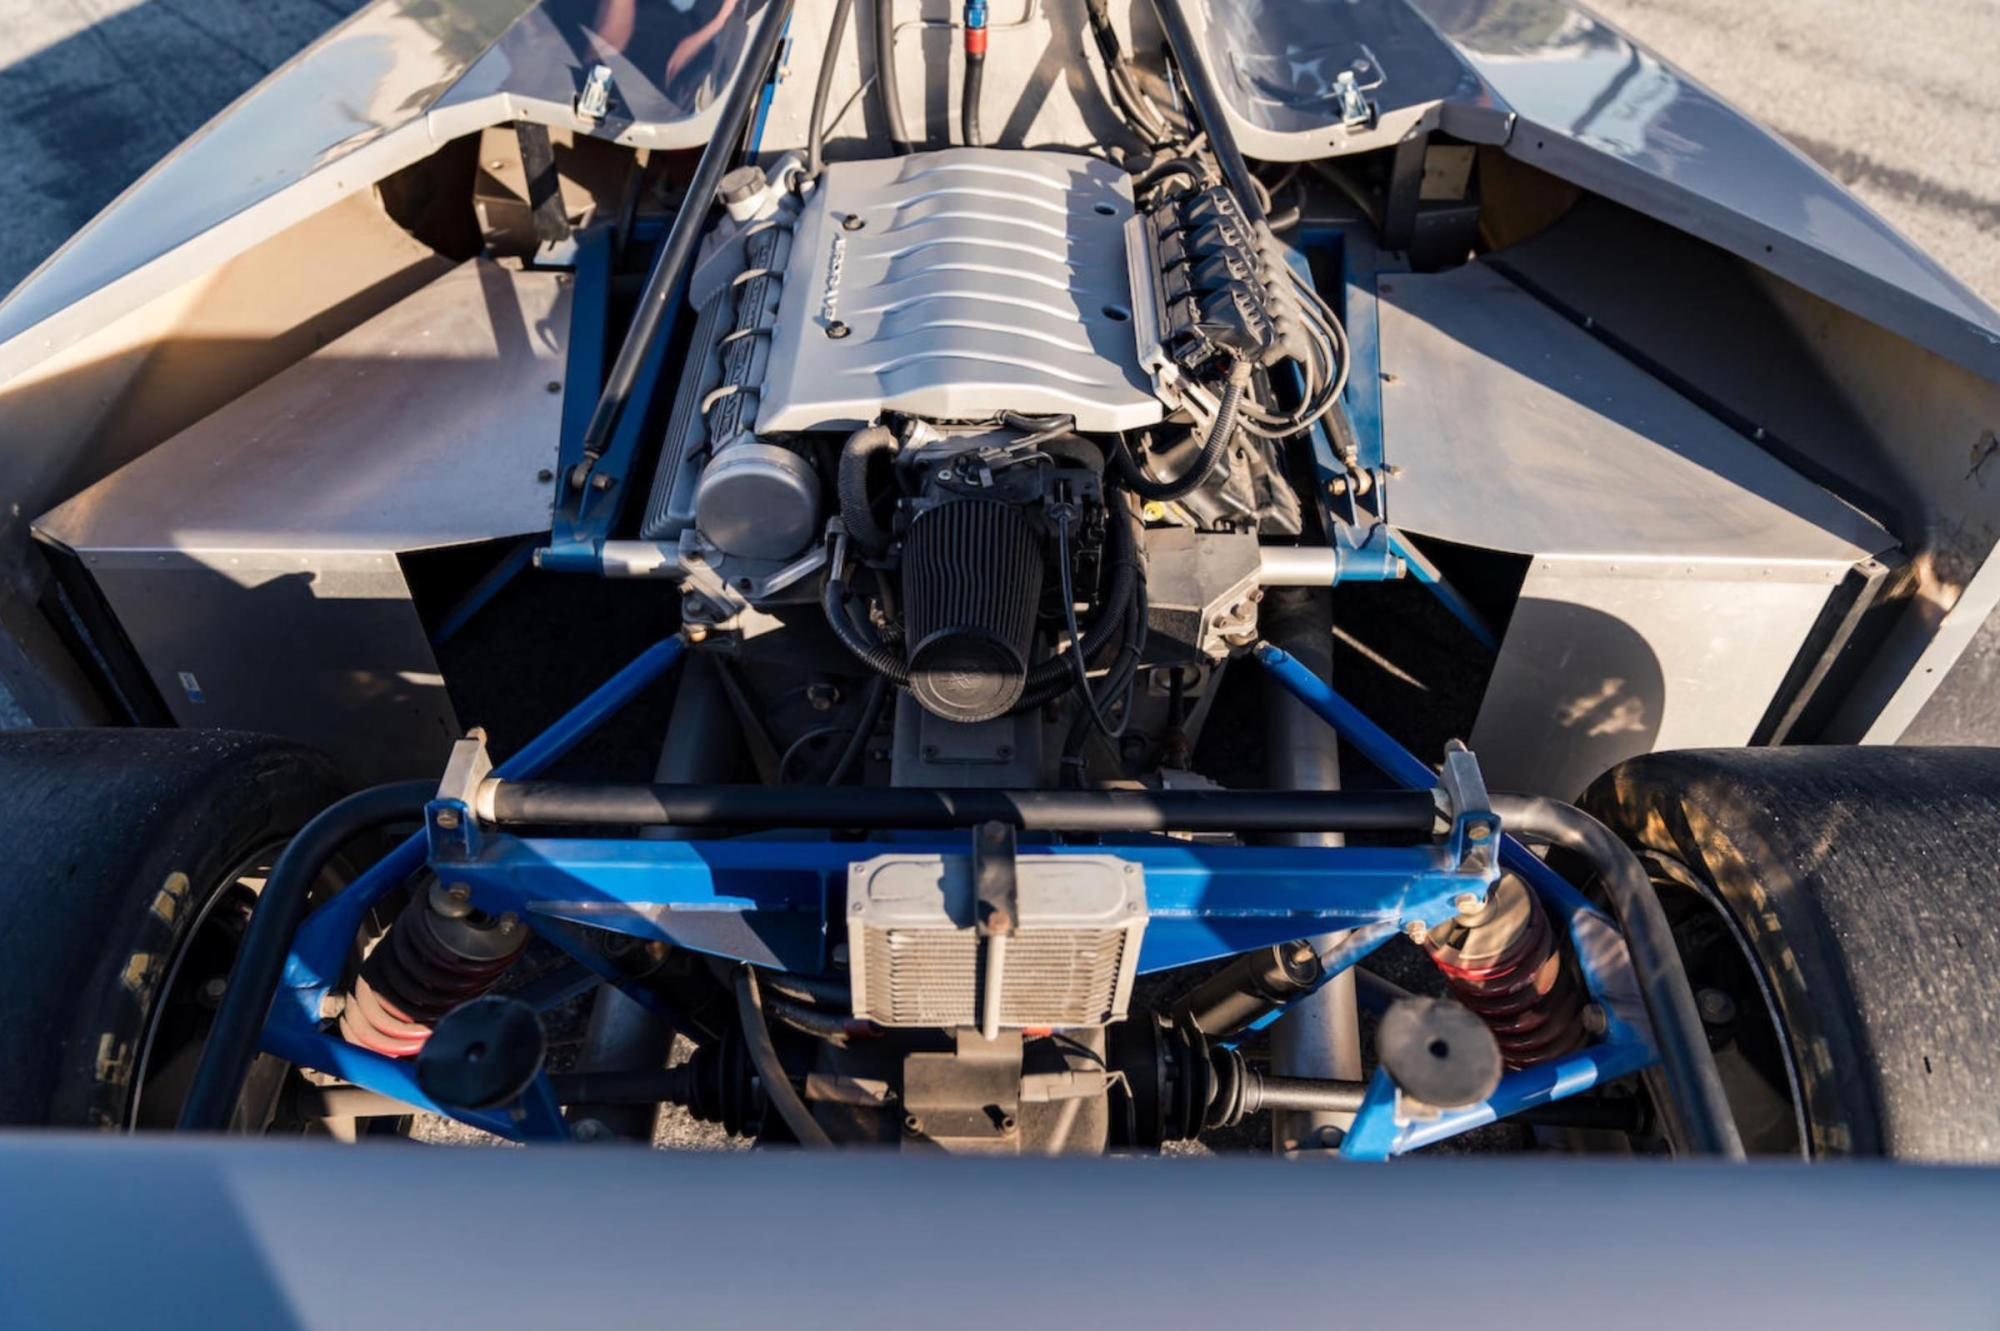 hight resolution of shelby can am aurora v8 engine